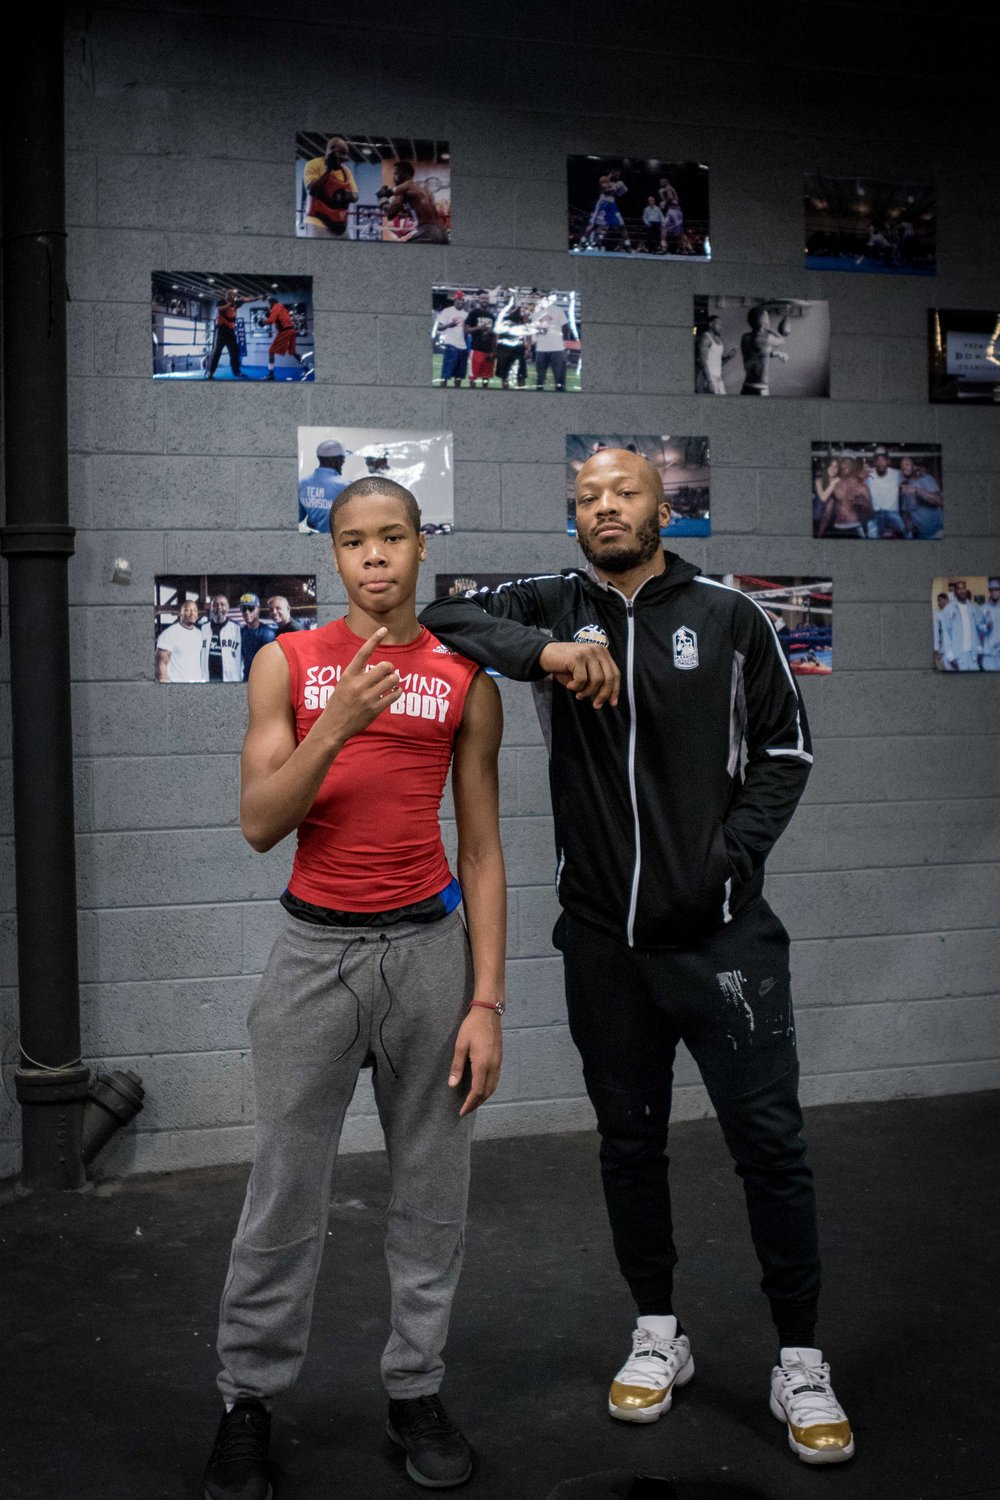 L.J. Harrison (trainer) and Gary Morris after another intense workout at Superbad Fitness.